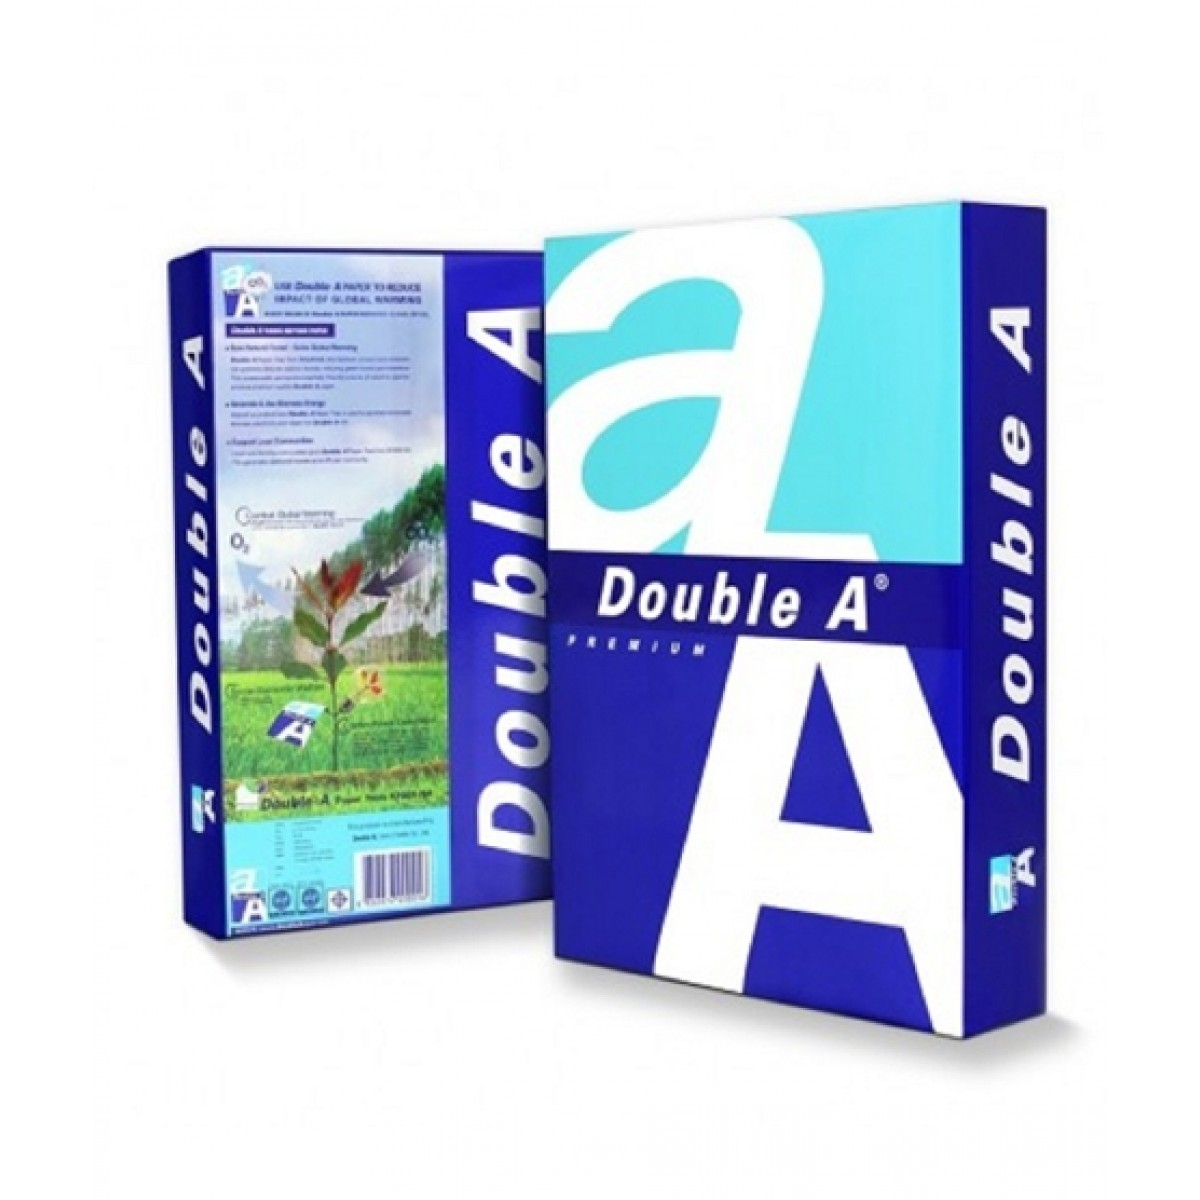 Double A F4 Legal Paper 500 Sheets 80gsm